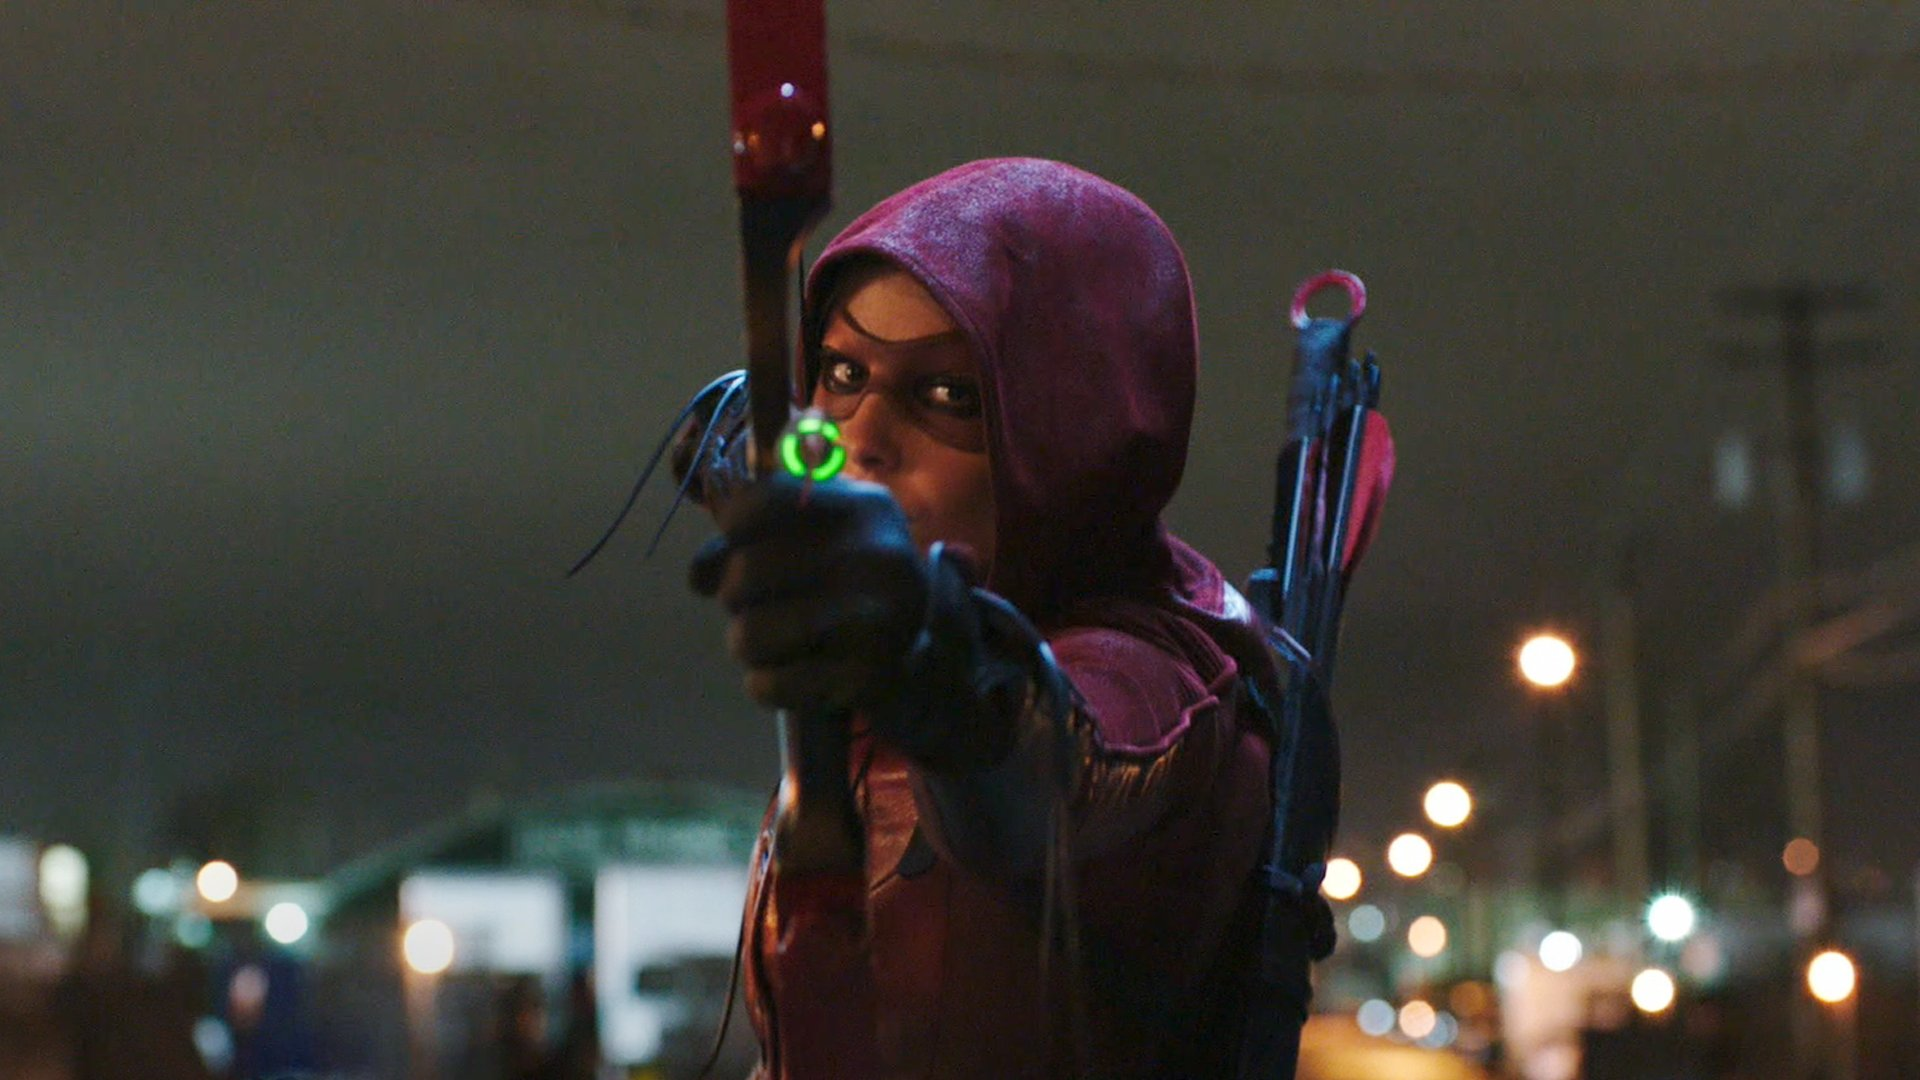 Speedy makes a comeback TOMORROW at 9/8c on The CW! Catch up first: https://t.co/nQsurloPg0 #Arrow https://t.co/Xvgjty7Avf